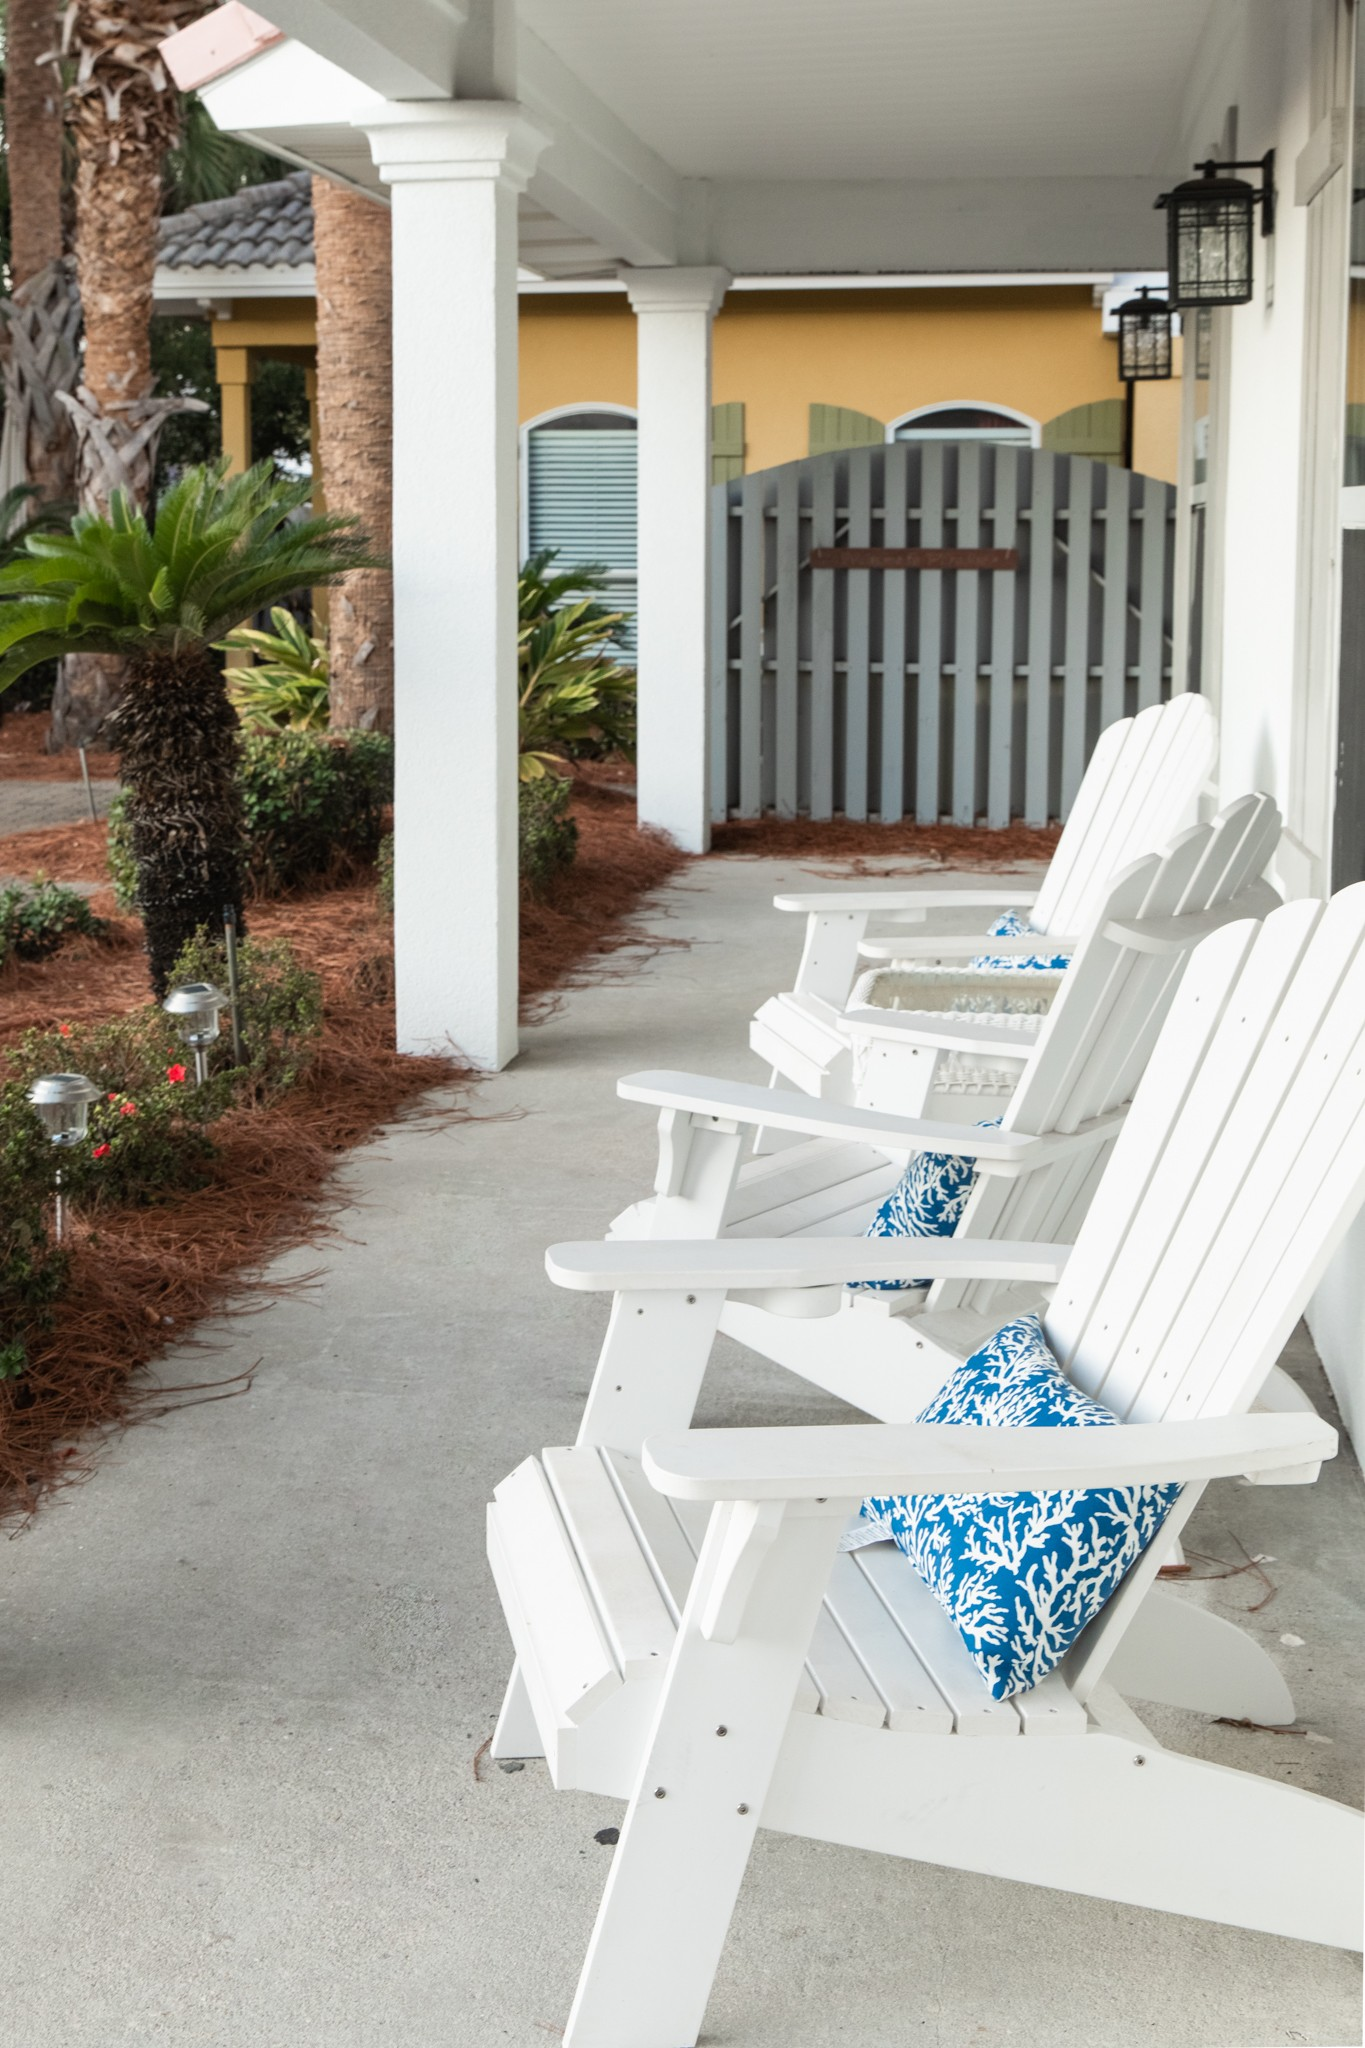 One of 4 porches this home has to offer!